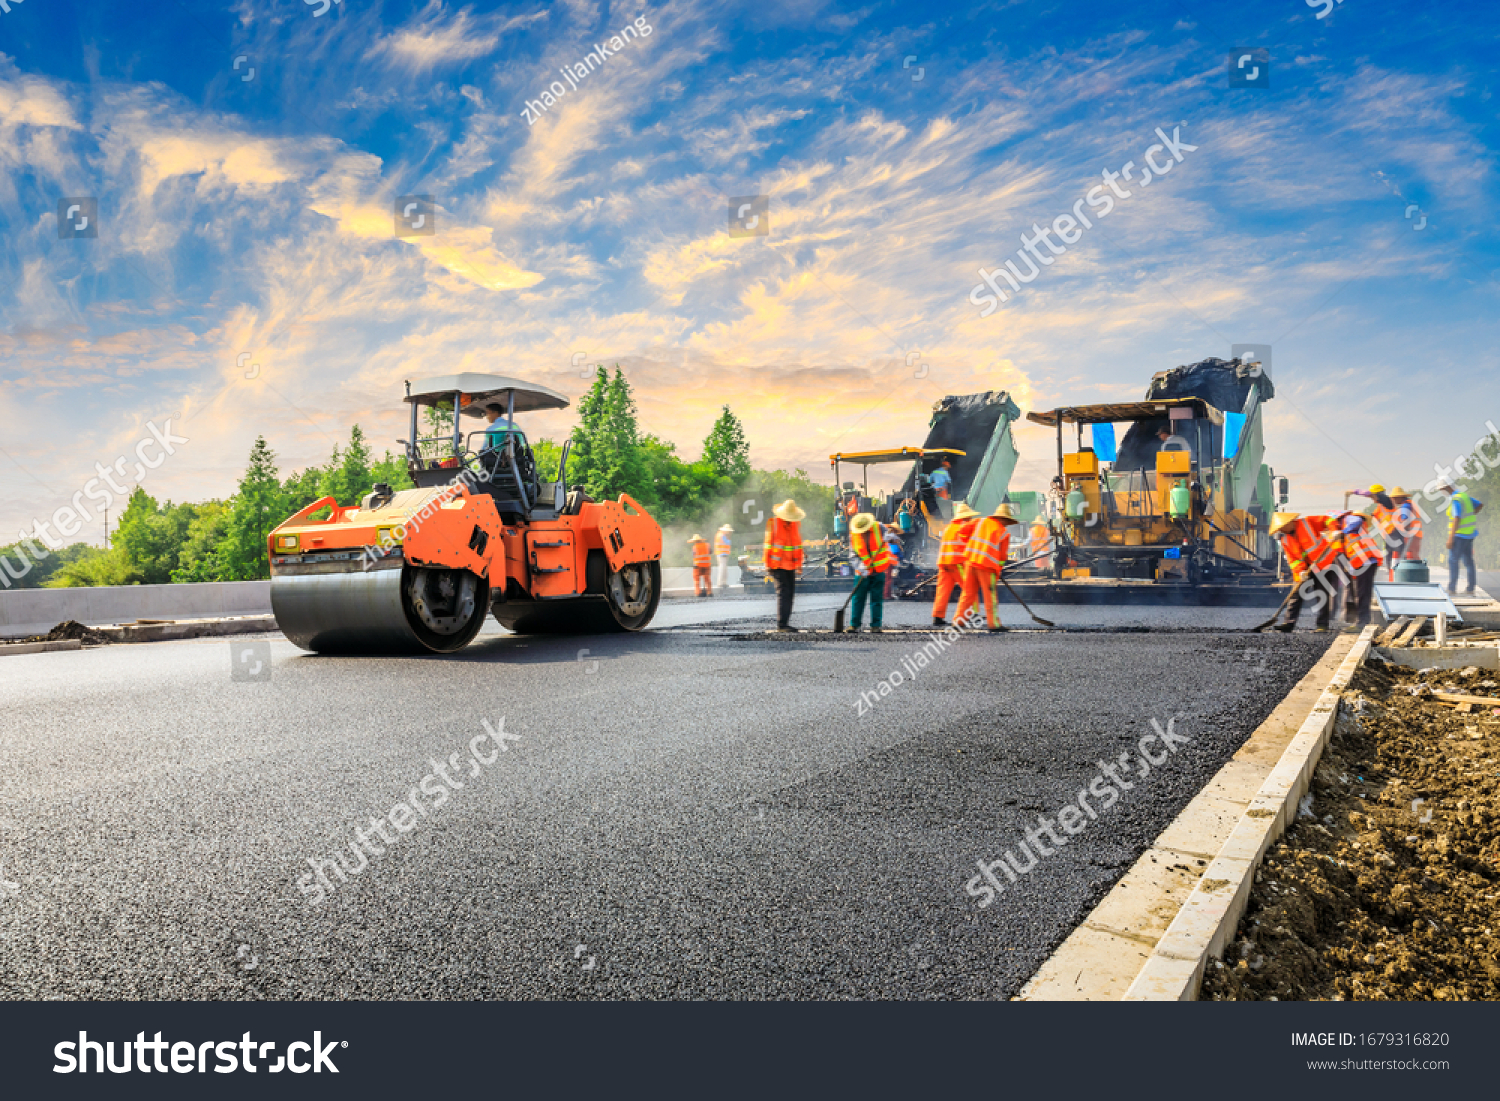 Construction site is laying new asphalt road pavement,road construction workers and road construction machinery scene.highway construction site landscape. #1679316820